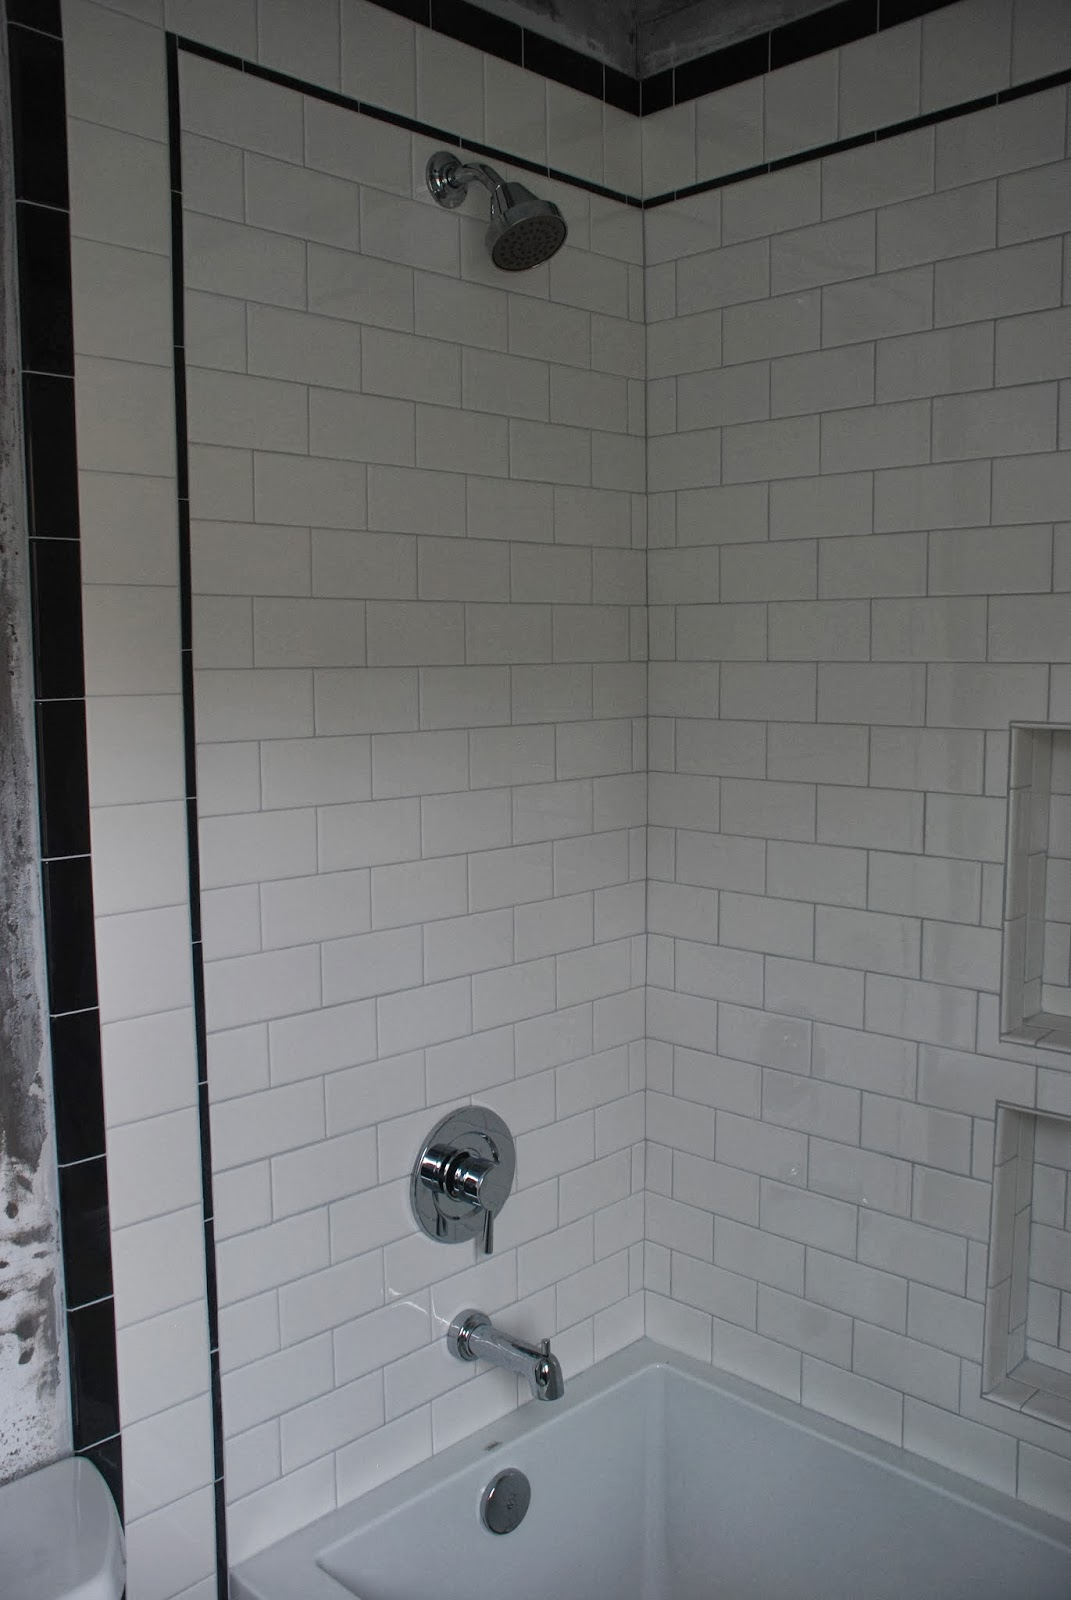 Our little beehive becoming handy through home renovation cooking - I M Totally In Love With This Shower Faucet Too It S Moen S Lever Tub Faucet Instead Of Saying Hot And Cold It Has A Little Sun On The Left And A